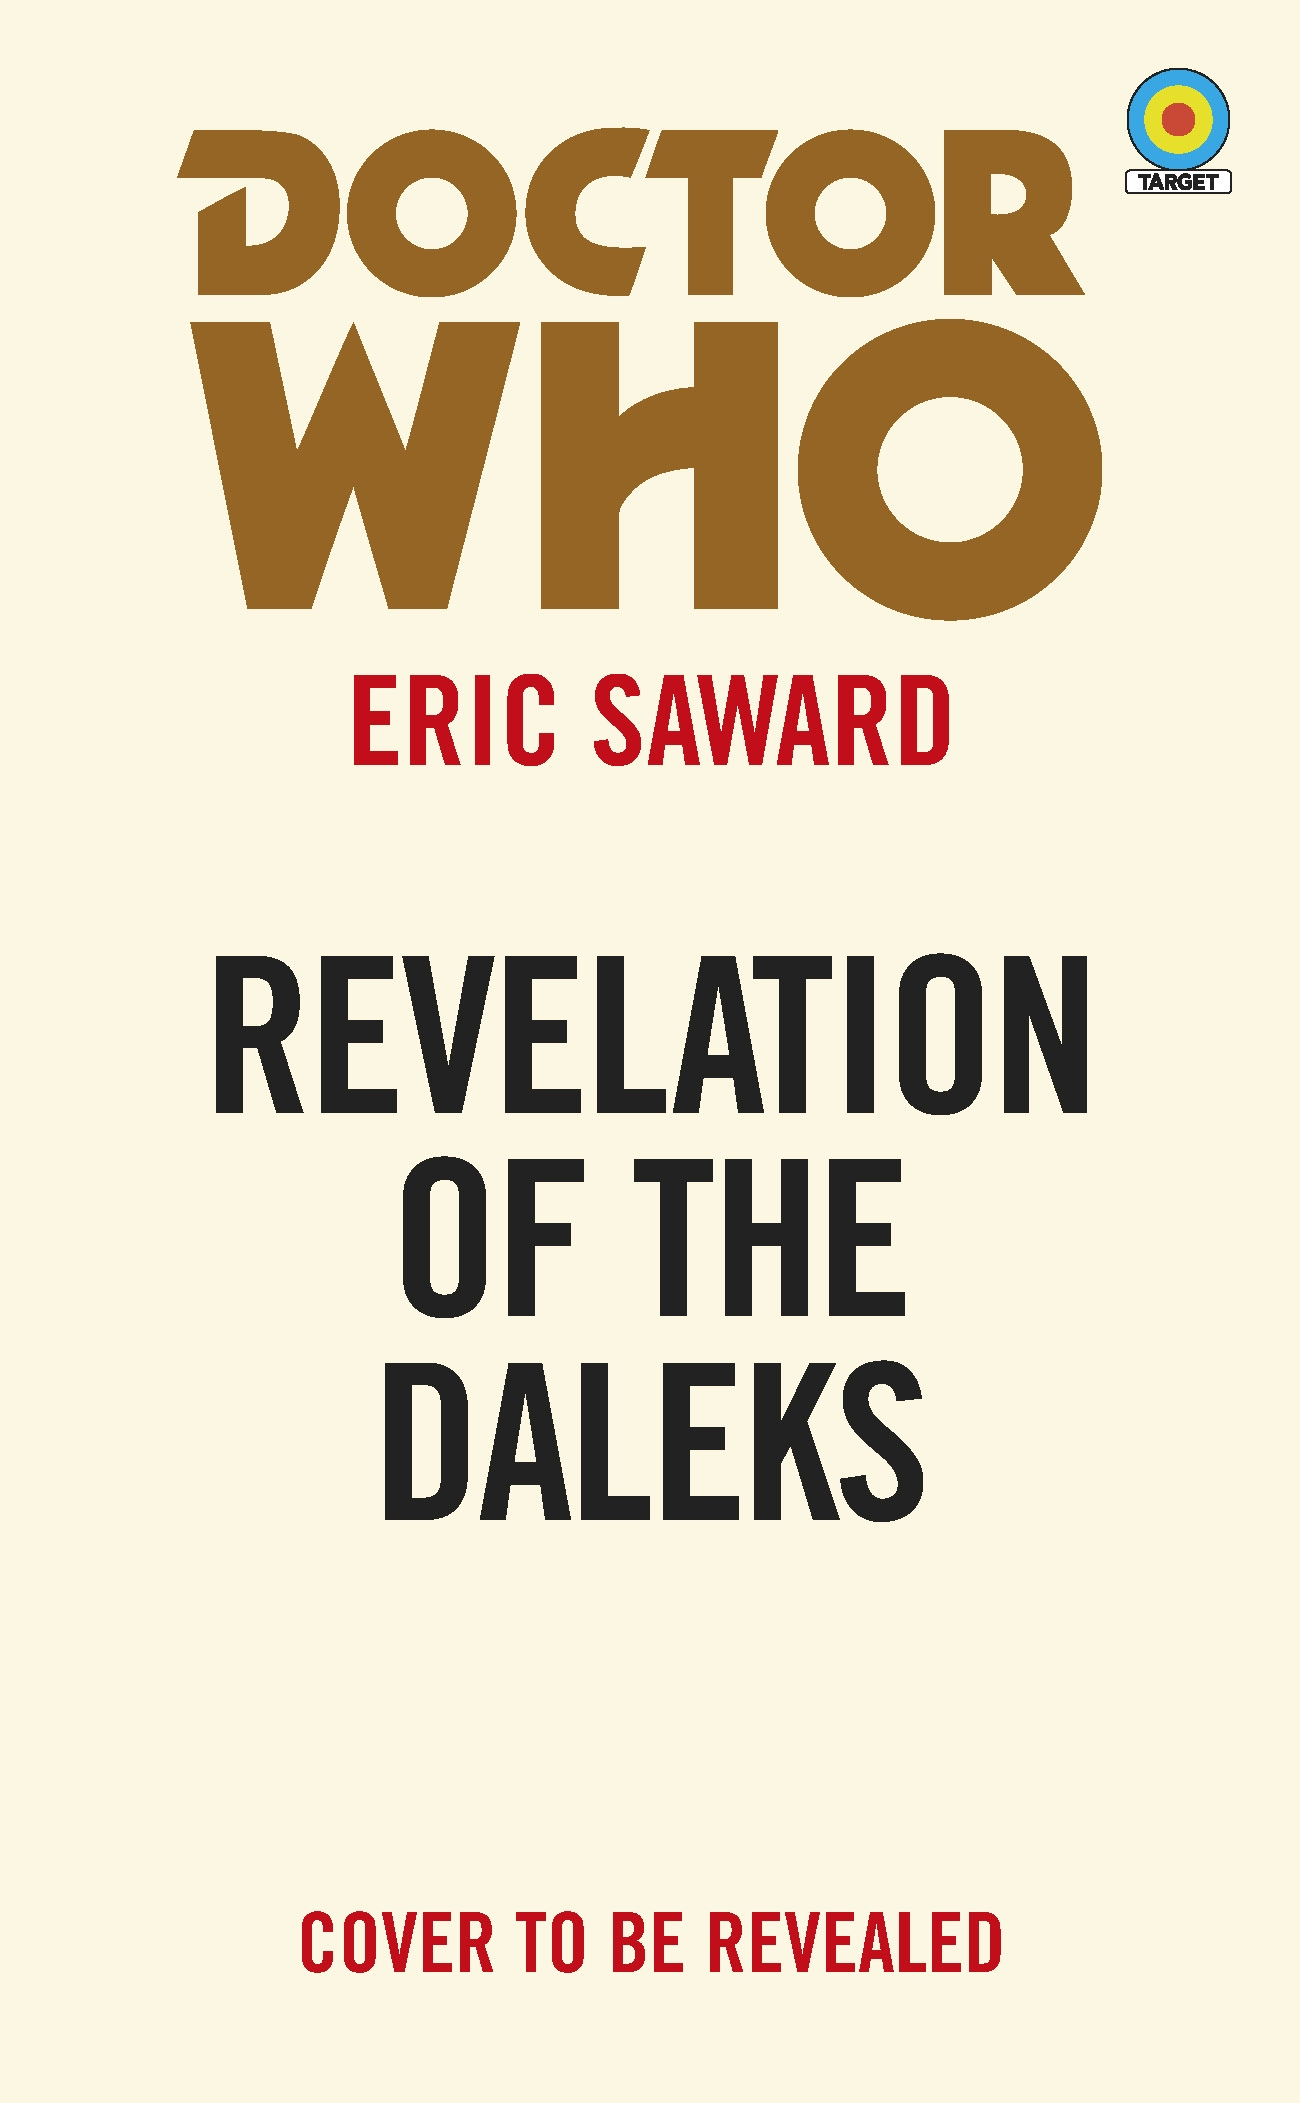 DOCTOR WHO TARGET COLLECTION REVELATION OF THE DALEKS